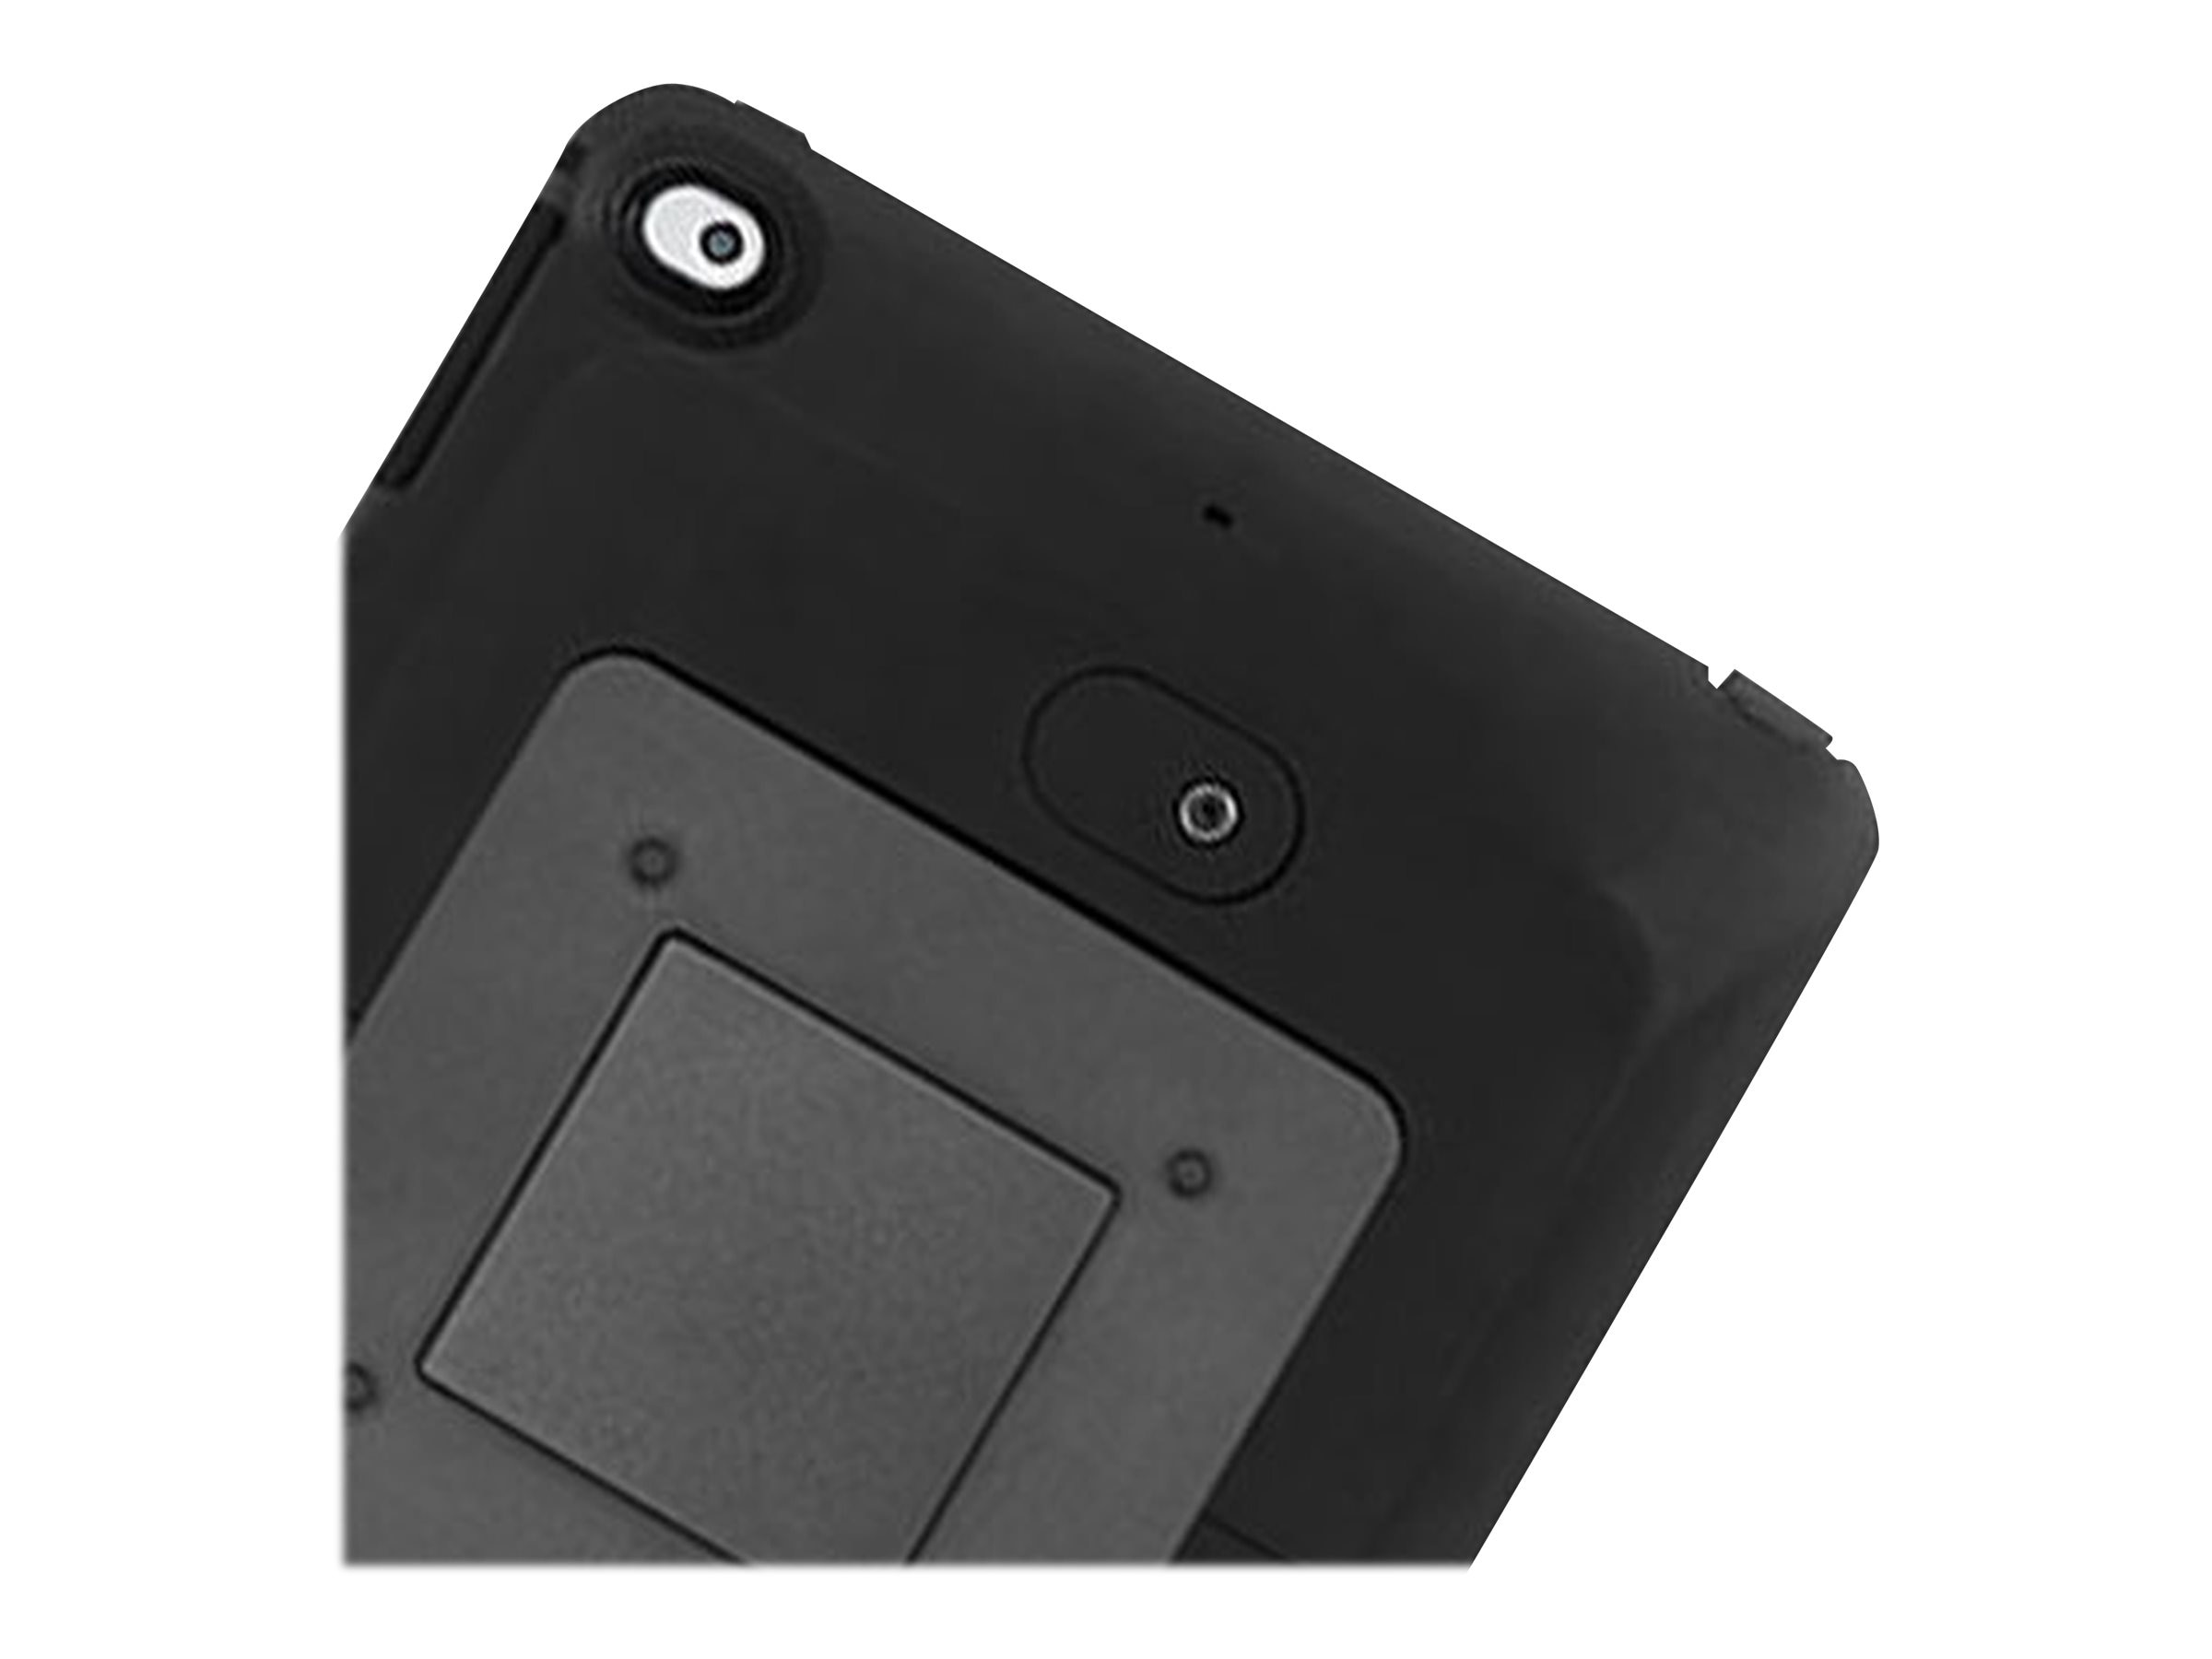 Kensington SecureBack Rugged Enclosure for iPad Air iPad Air 2, Black, K67738WW